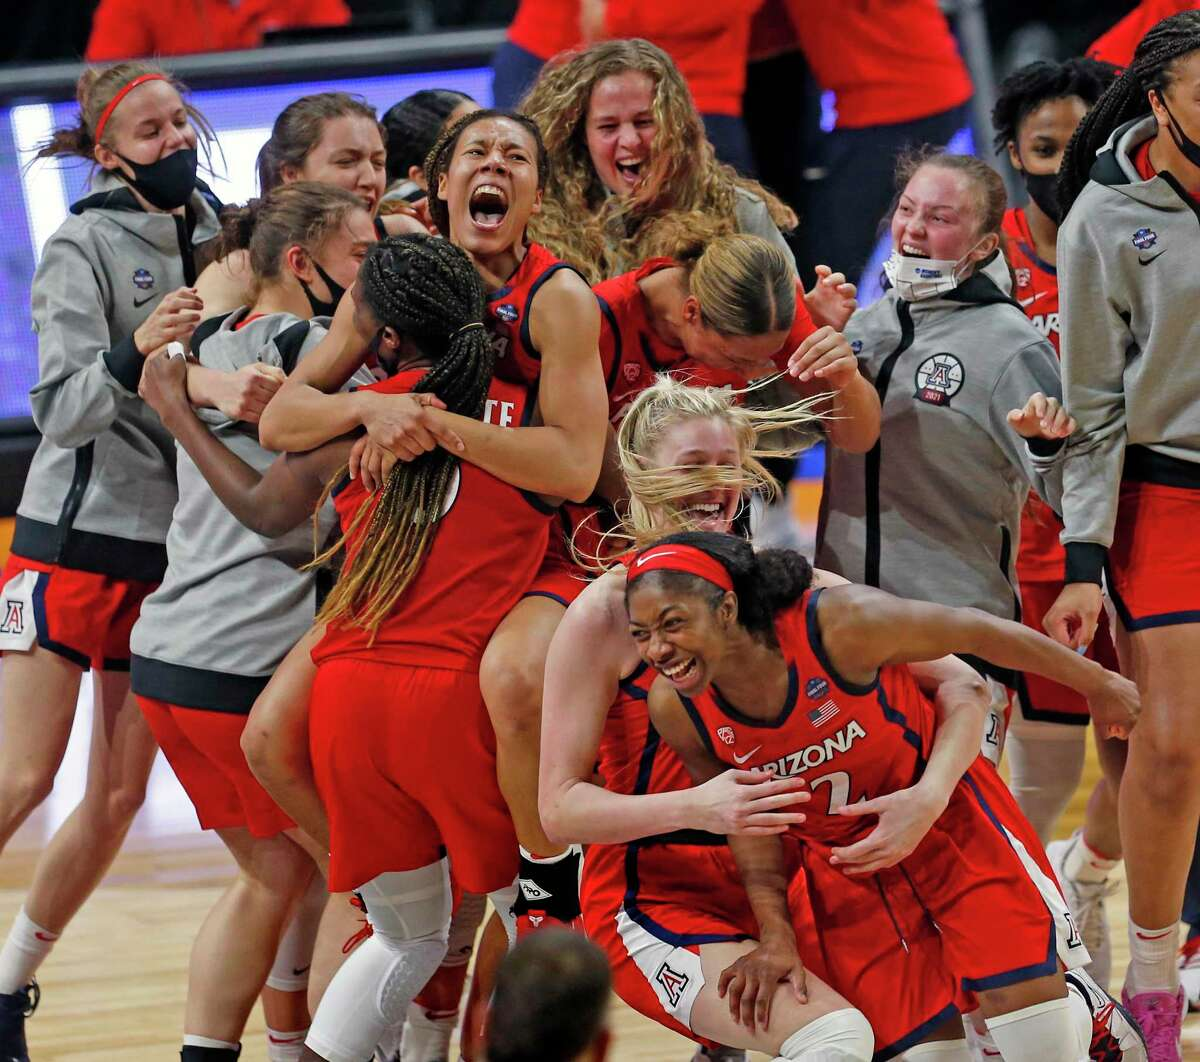 Arizona guard Aari McDonald (2) jumps in into the arms of Arizona forward Cate Reese (25) as the team celebrates their win over UConn 69-59 on Friday, April 2, 2021 at the Alamodome.